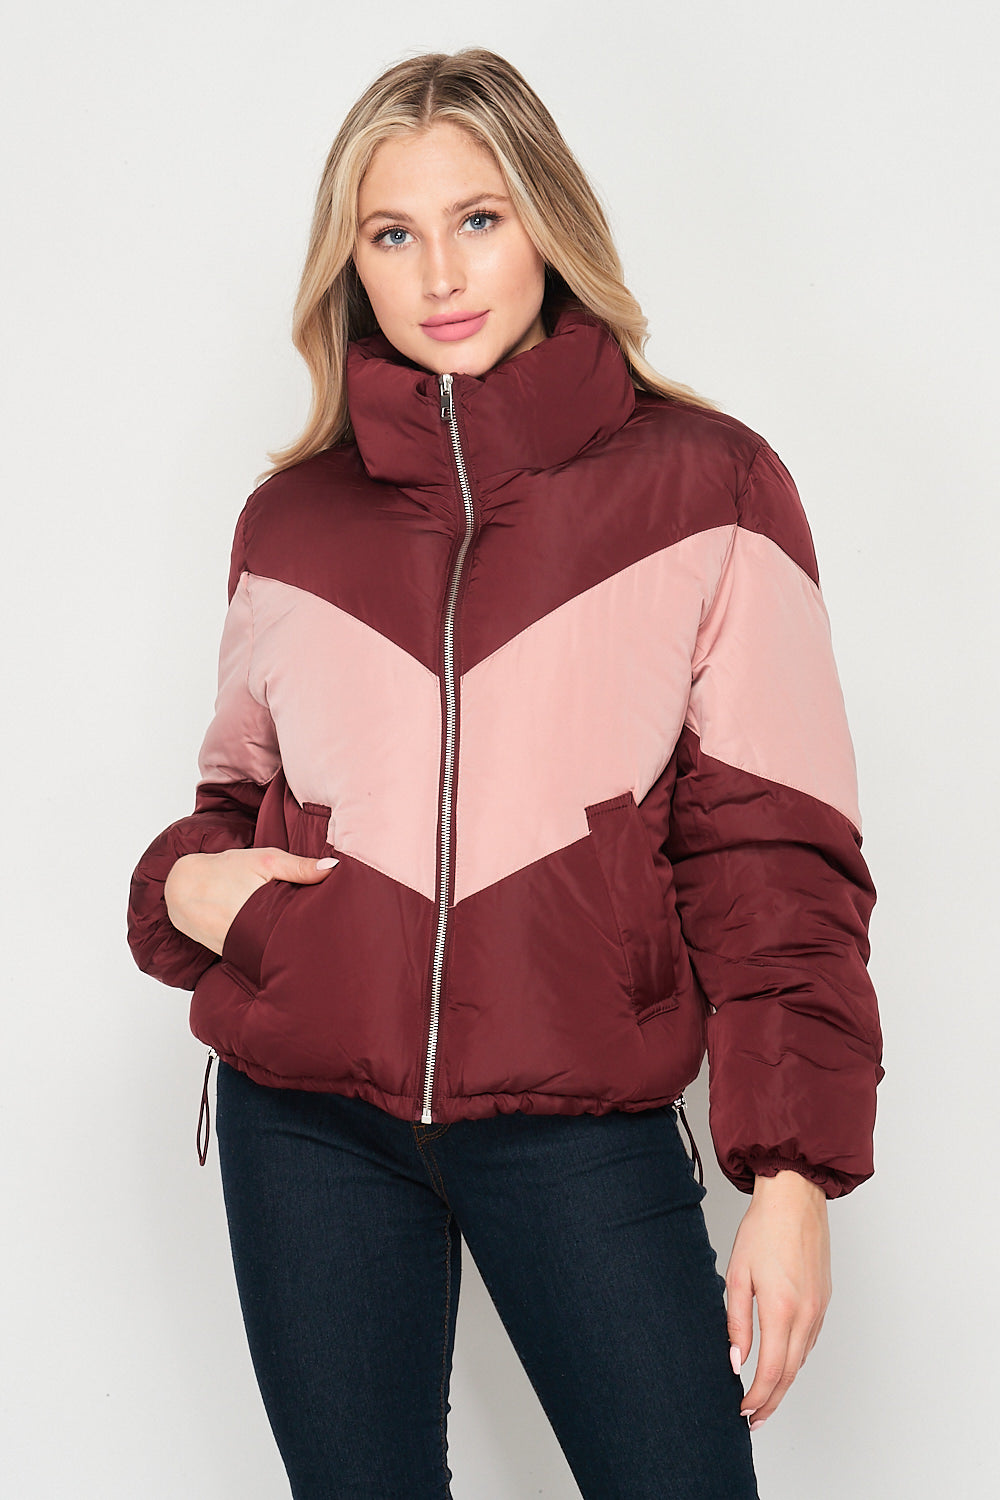 Blank Lewks | Warm Feeling Nylon Puffer Jacket | Burgundy/Pink